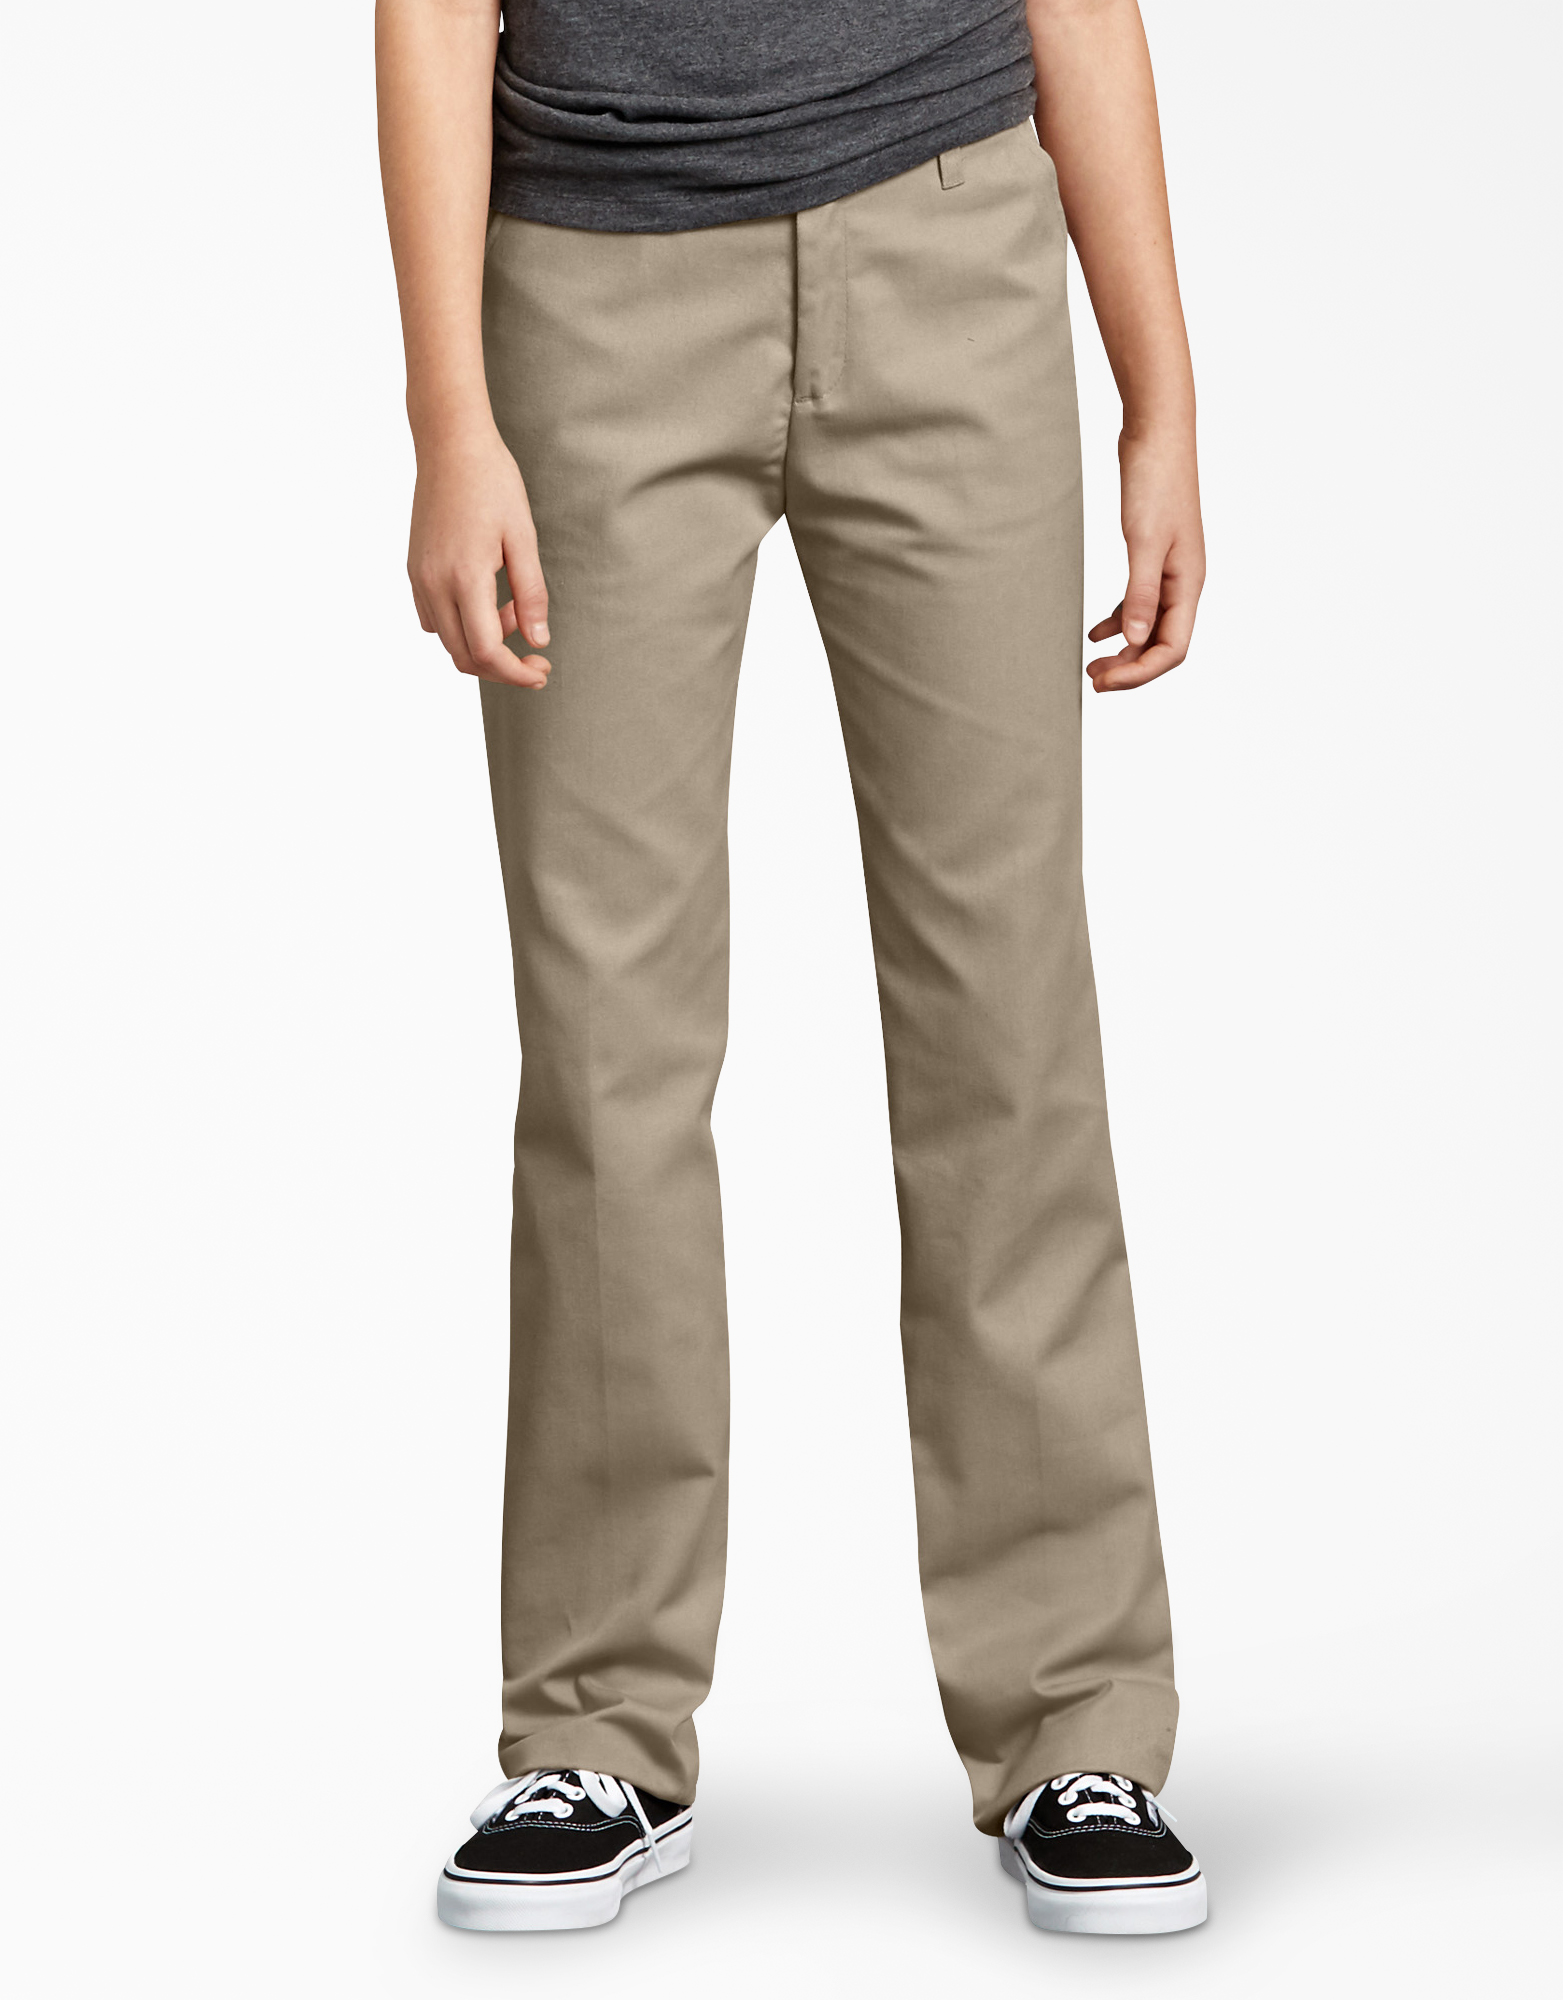 Girls' FlexWaist® Slim Fit Straight Leg Flat Front Pants, 7-16 - Desert Khaki (DS)